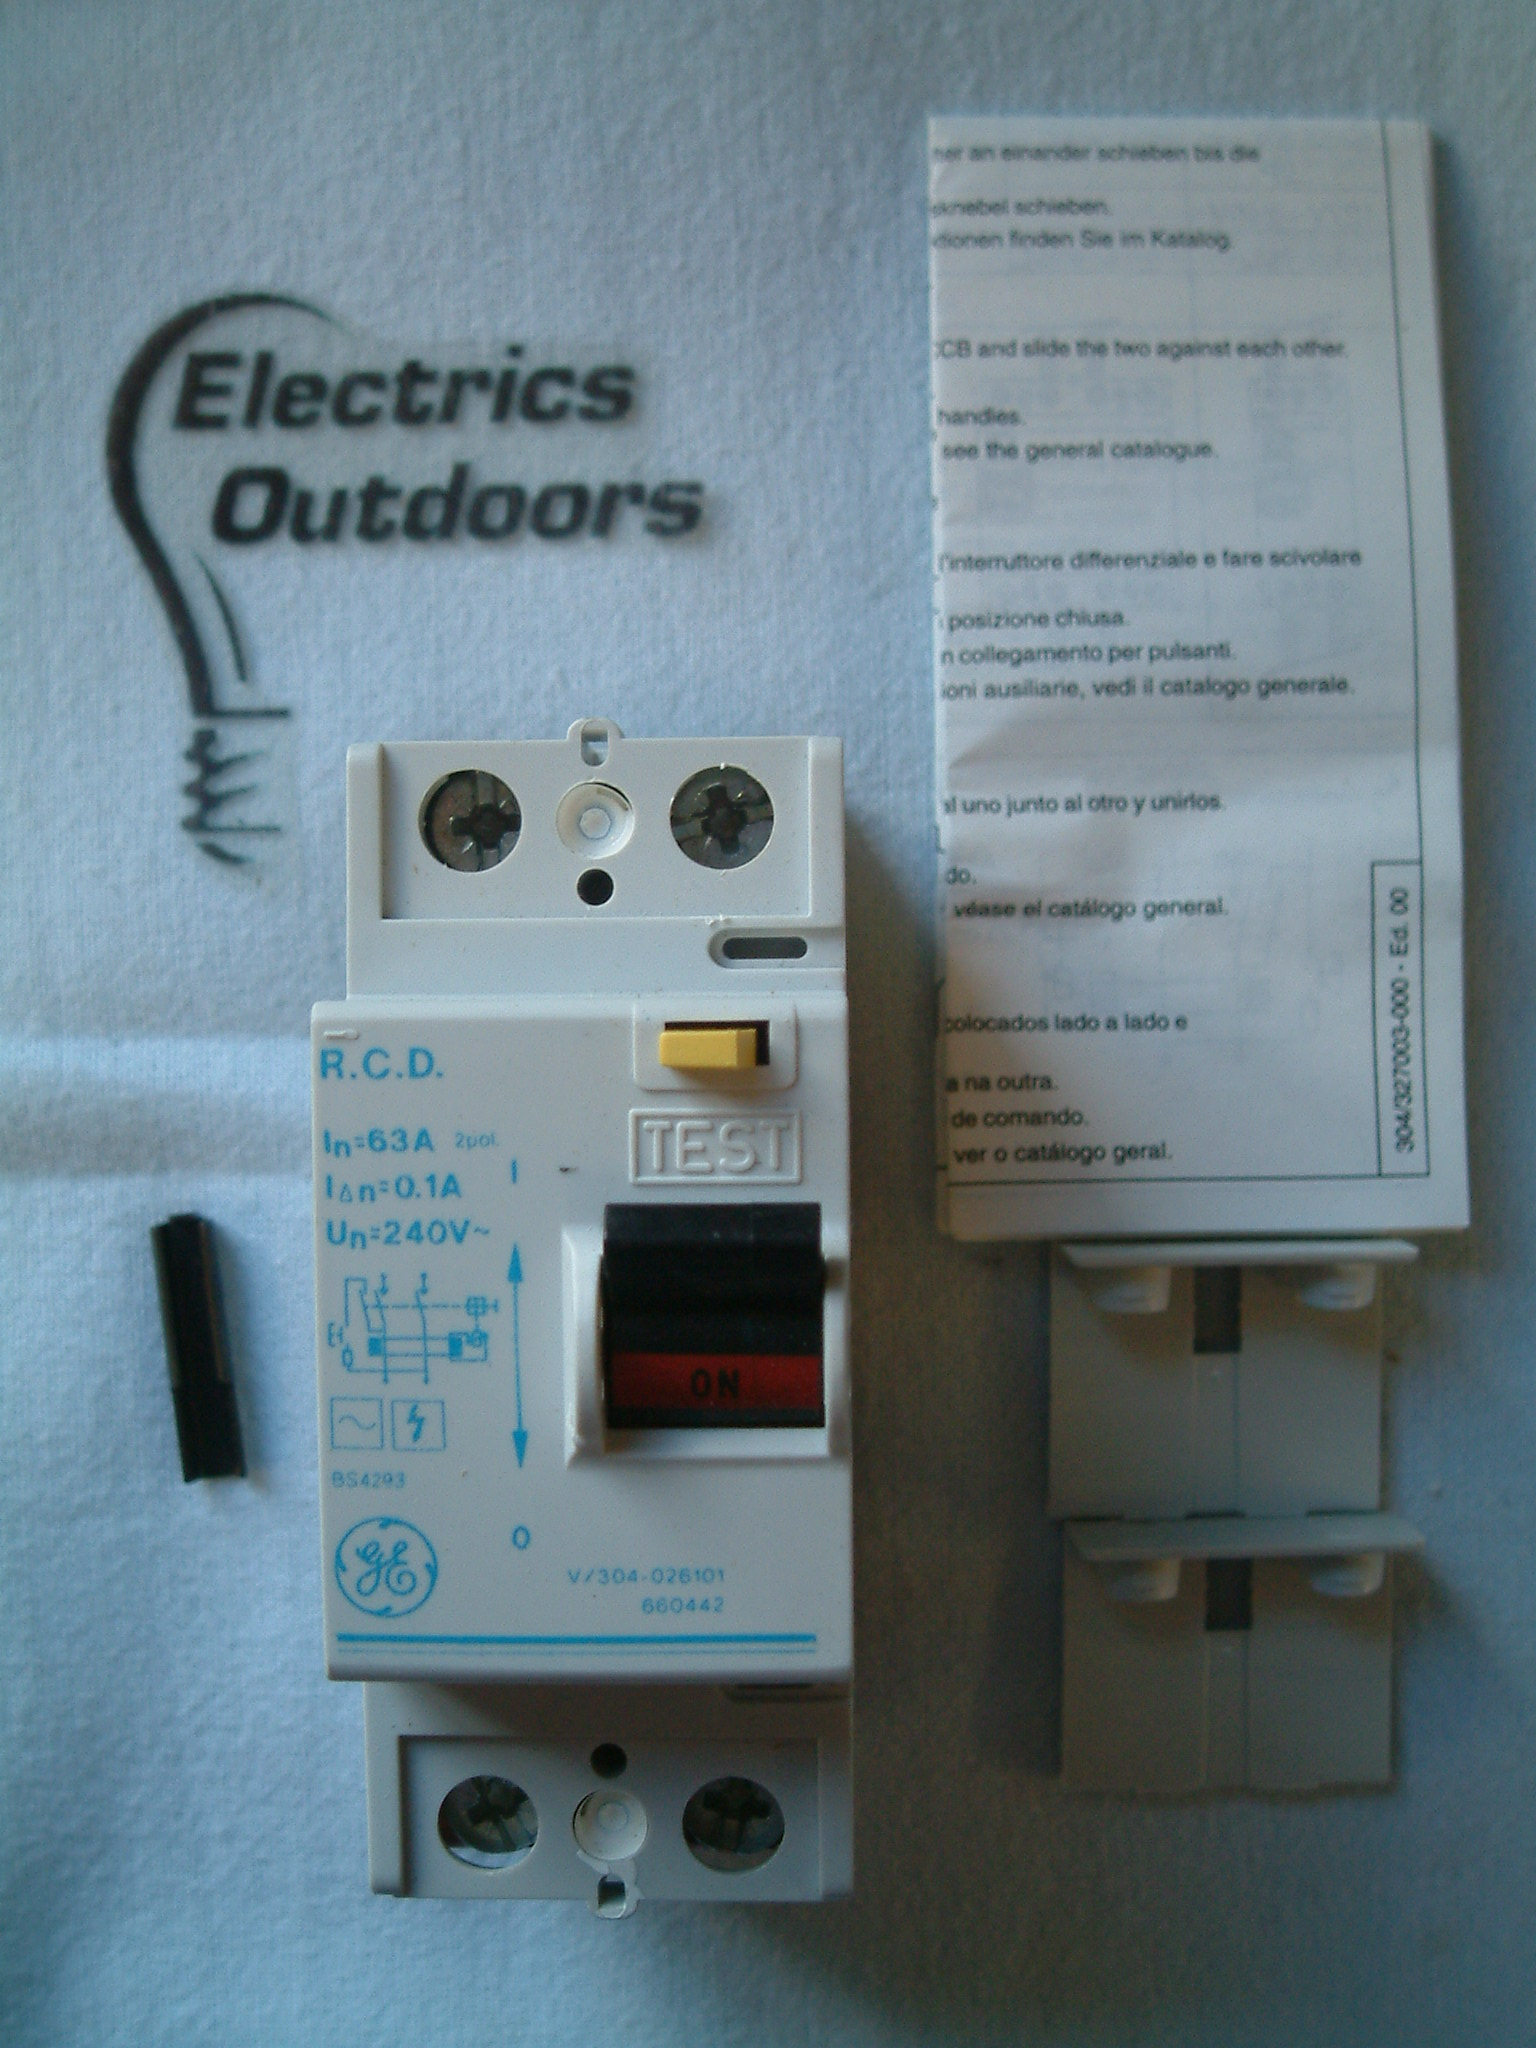 GENERAL ELECTRIC 63 AMP 100 mA RCCB RCD DOUBLE POLE 240 V 660442